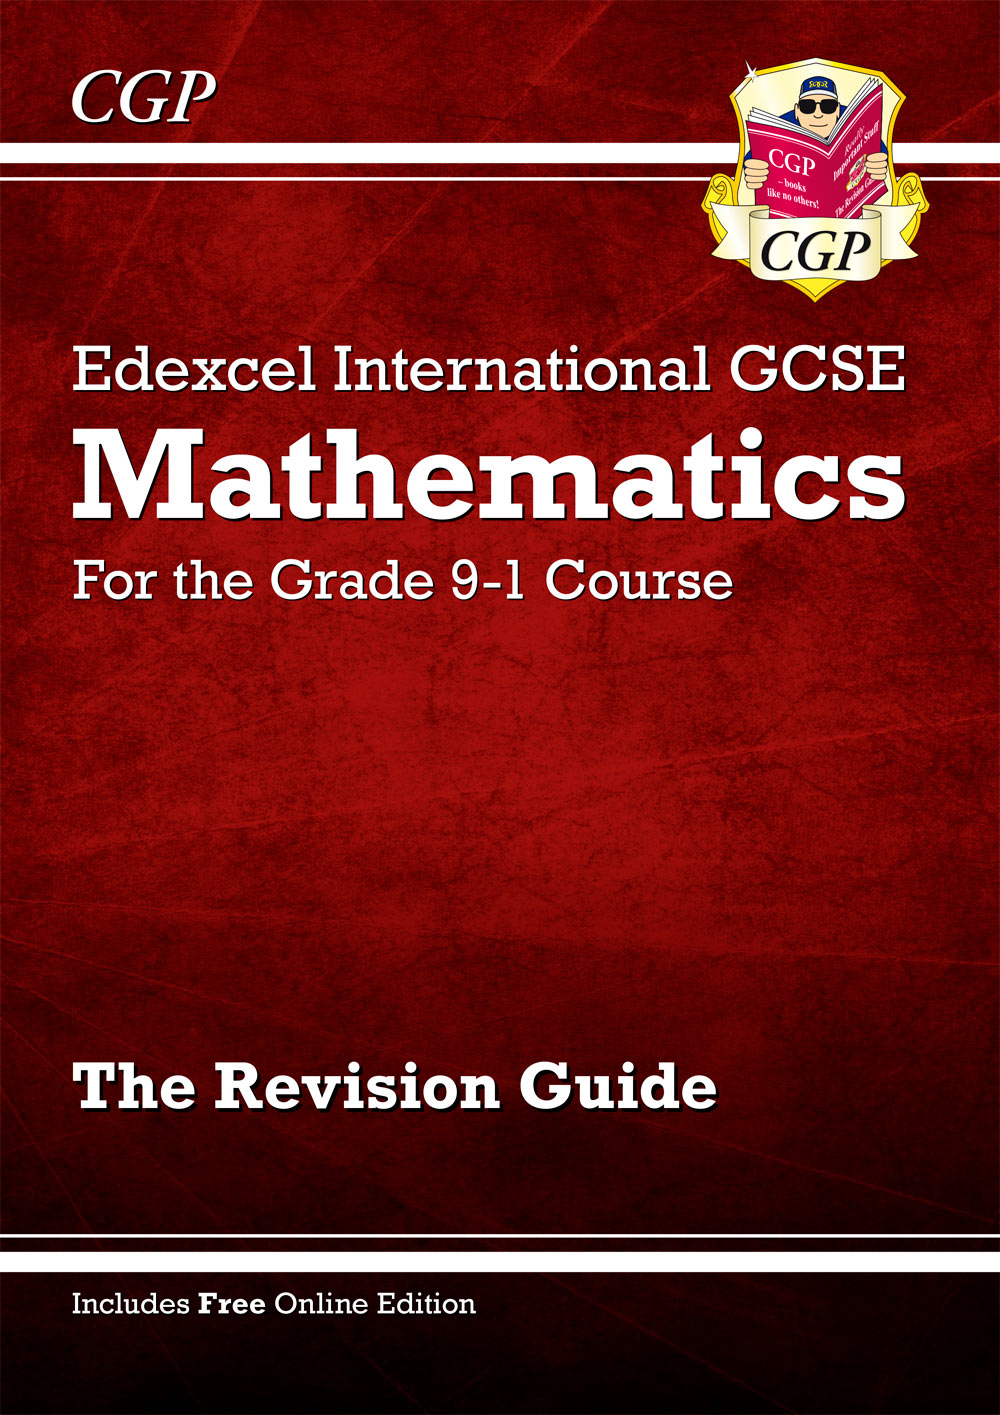 MERI44 - Edexcel International GCSE Maths Revision Guide - for the Grade 9-1 Course (with Online Edi